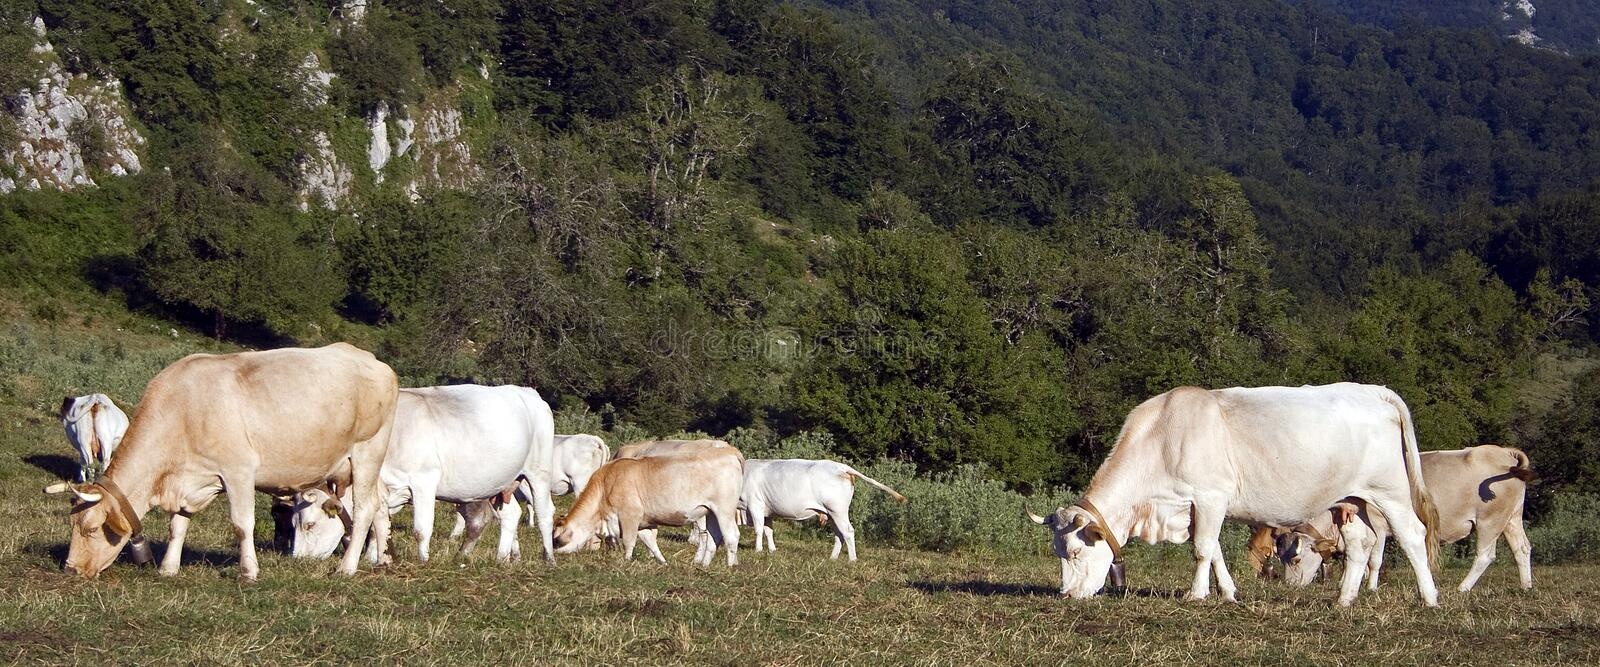 Download Cows Grazing Royalty Free Stock Image - Image: 17747126